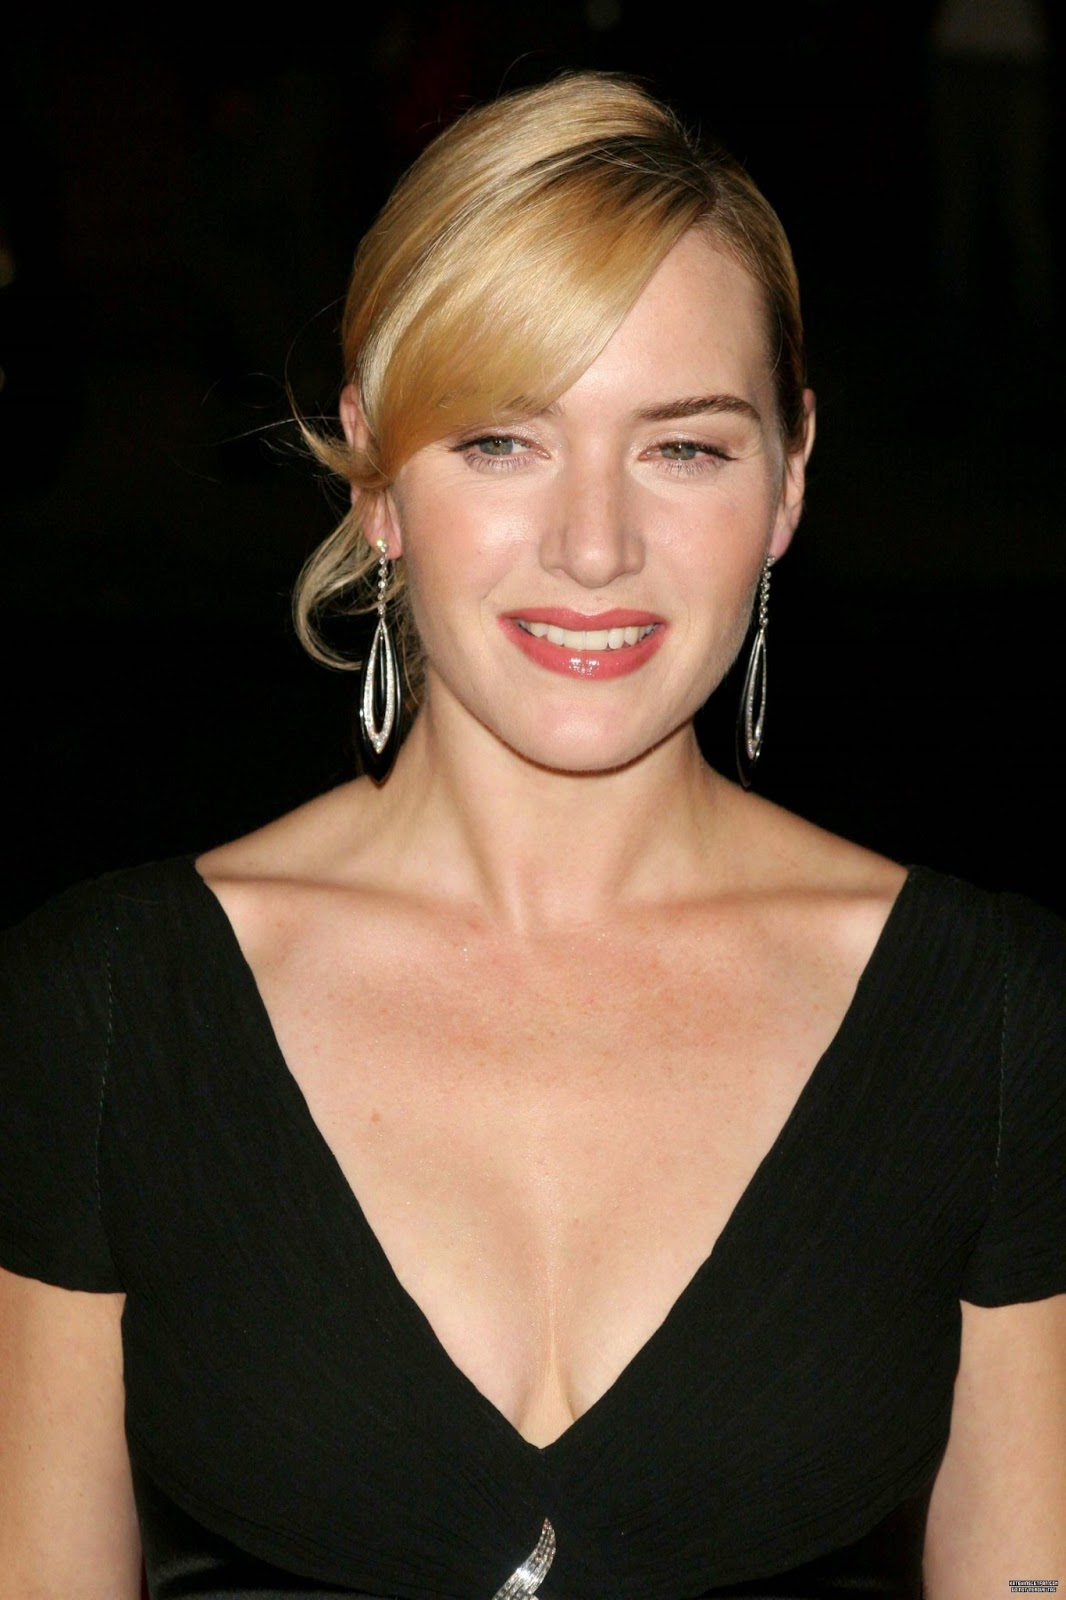 Kate Winslet: Kate Winslet Photoshoot